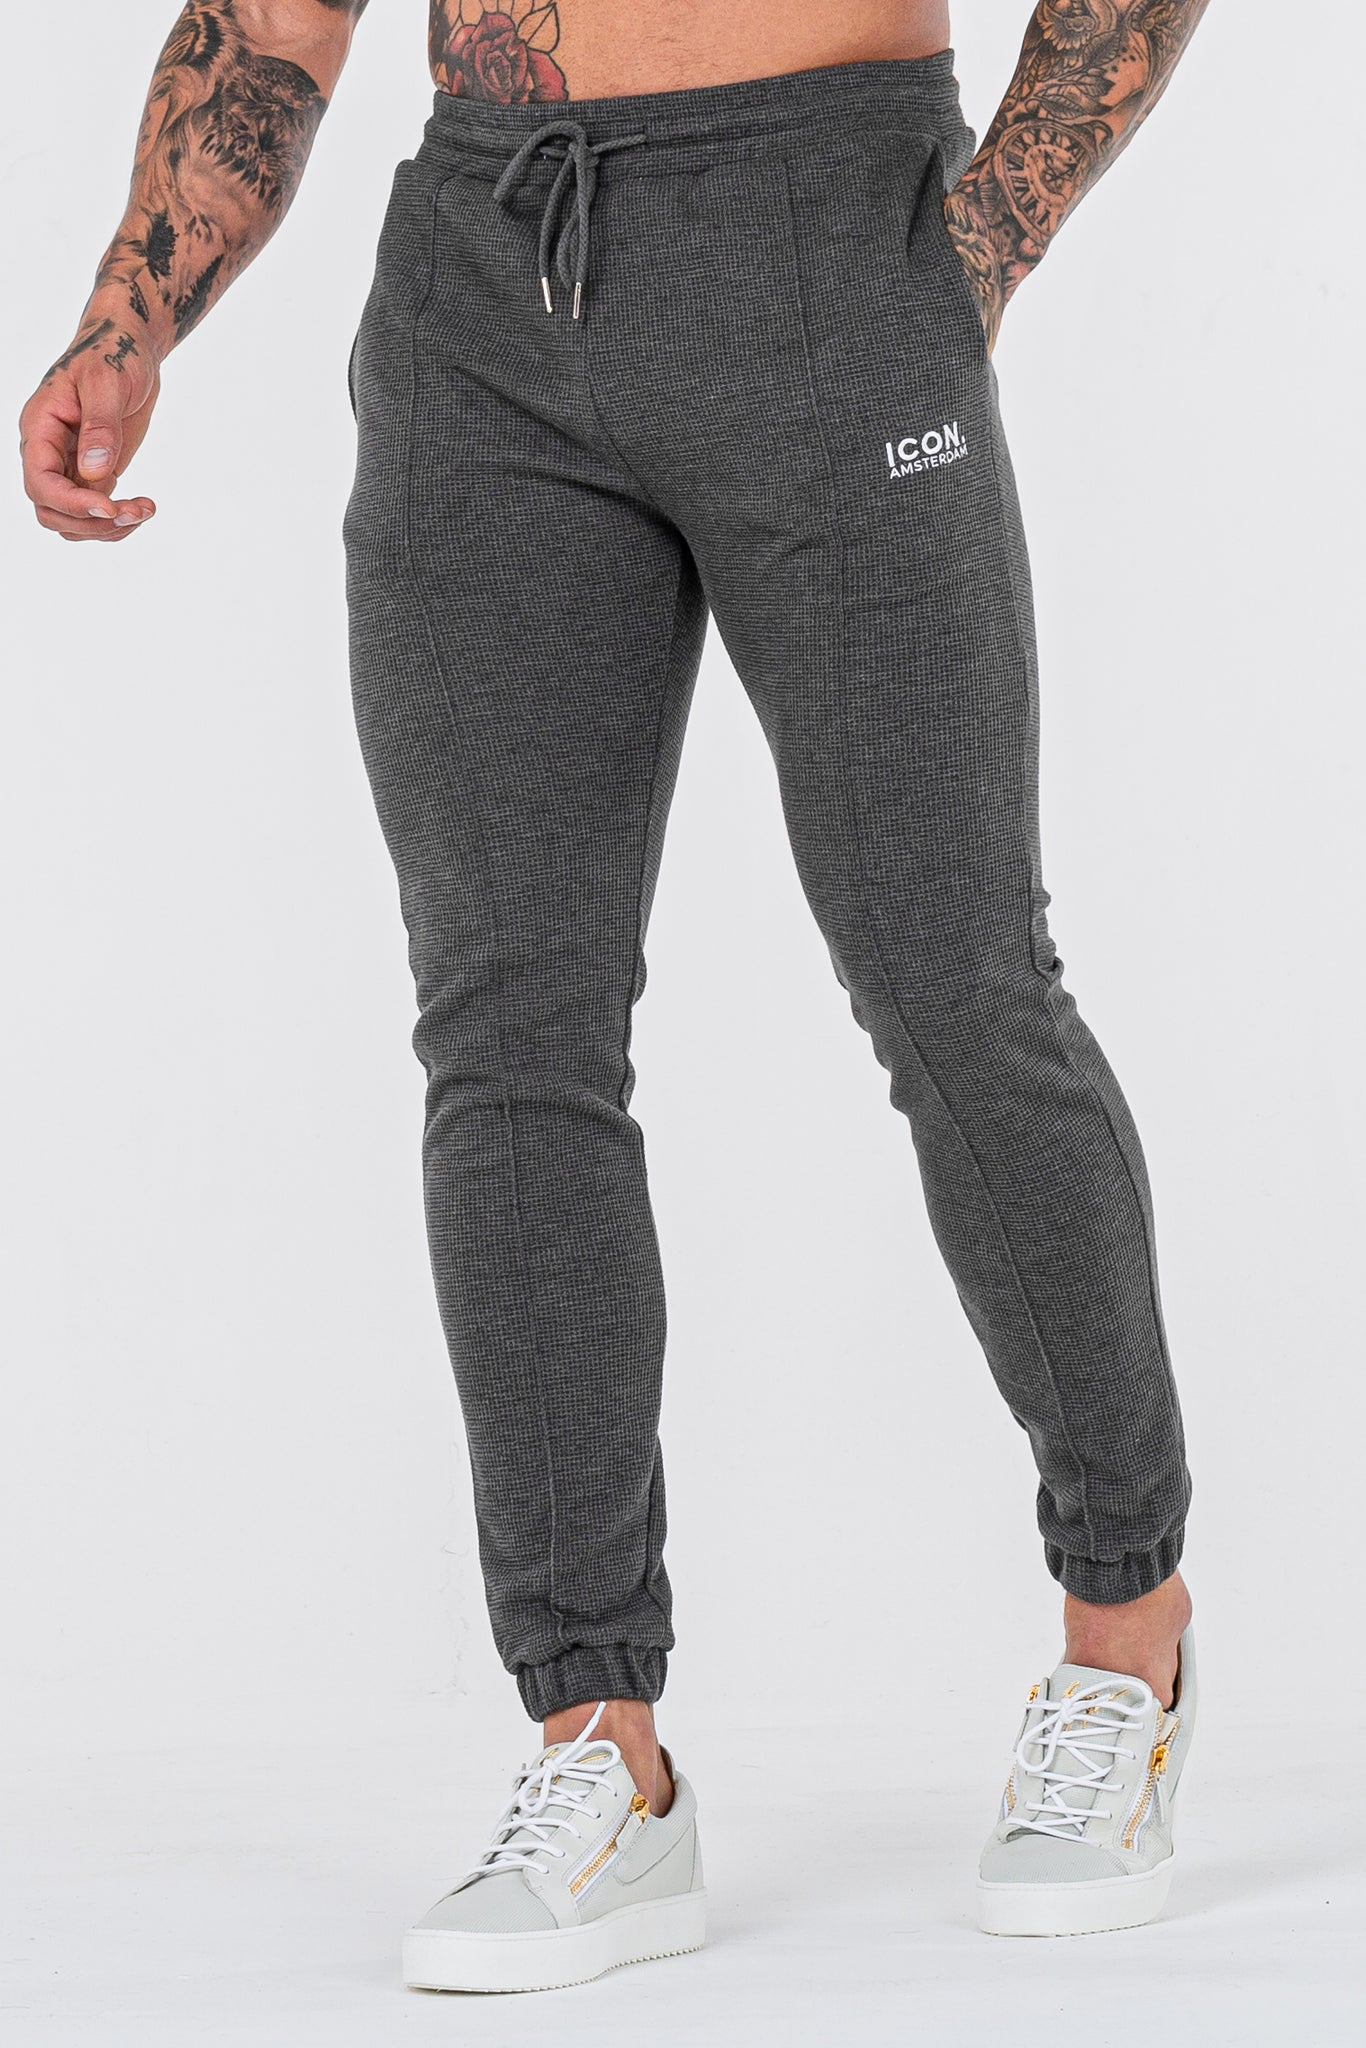 THE CAZA TROUSERS - CHARCOAL - ICON. AMSTERDAM